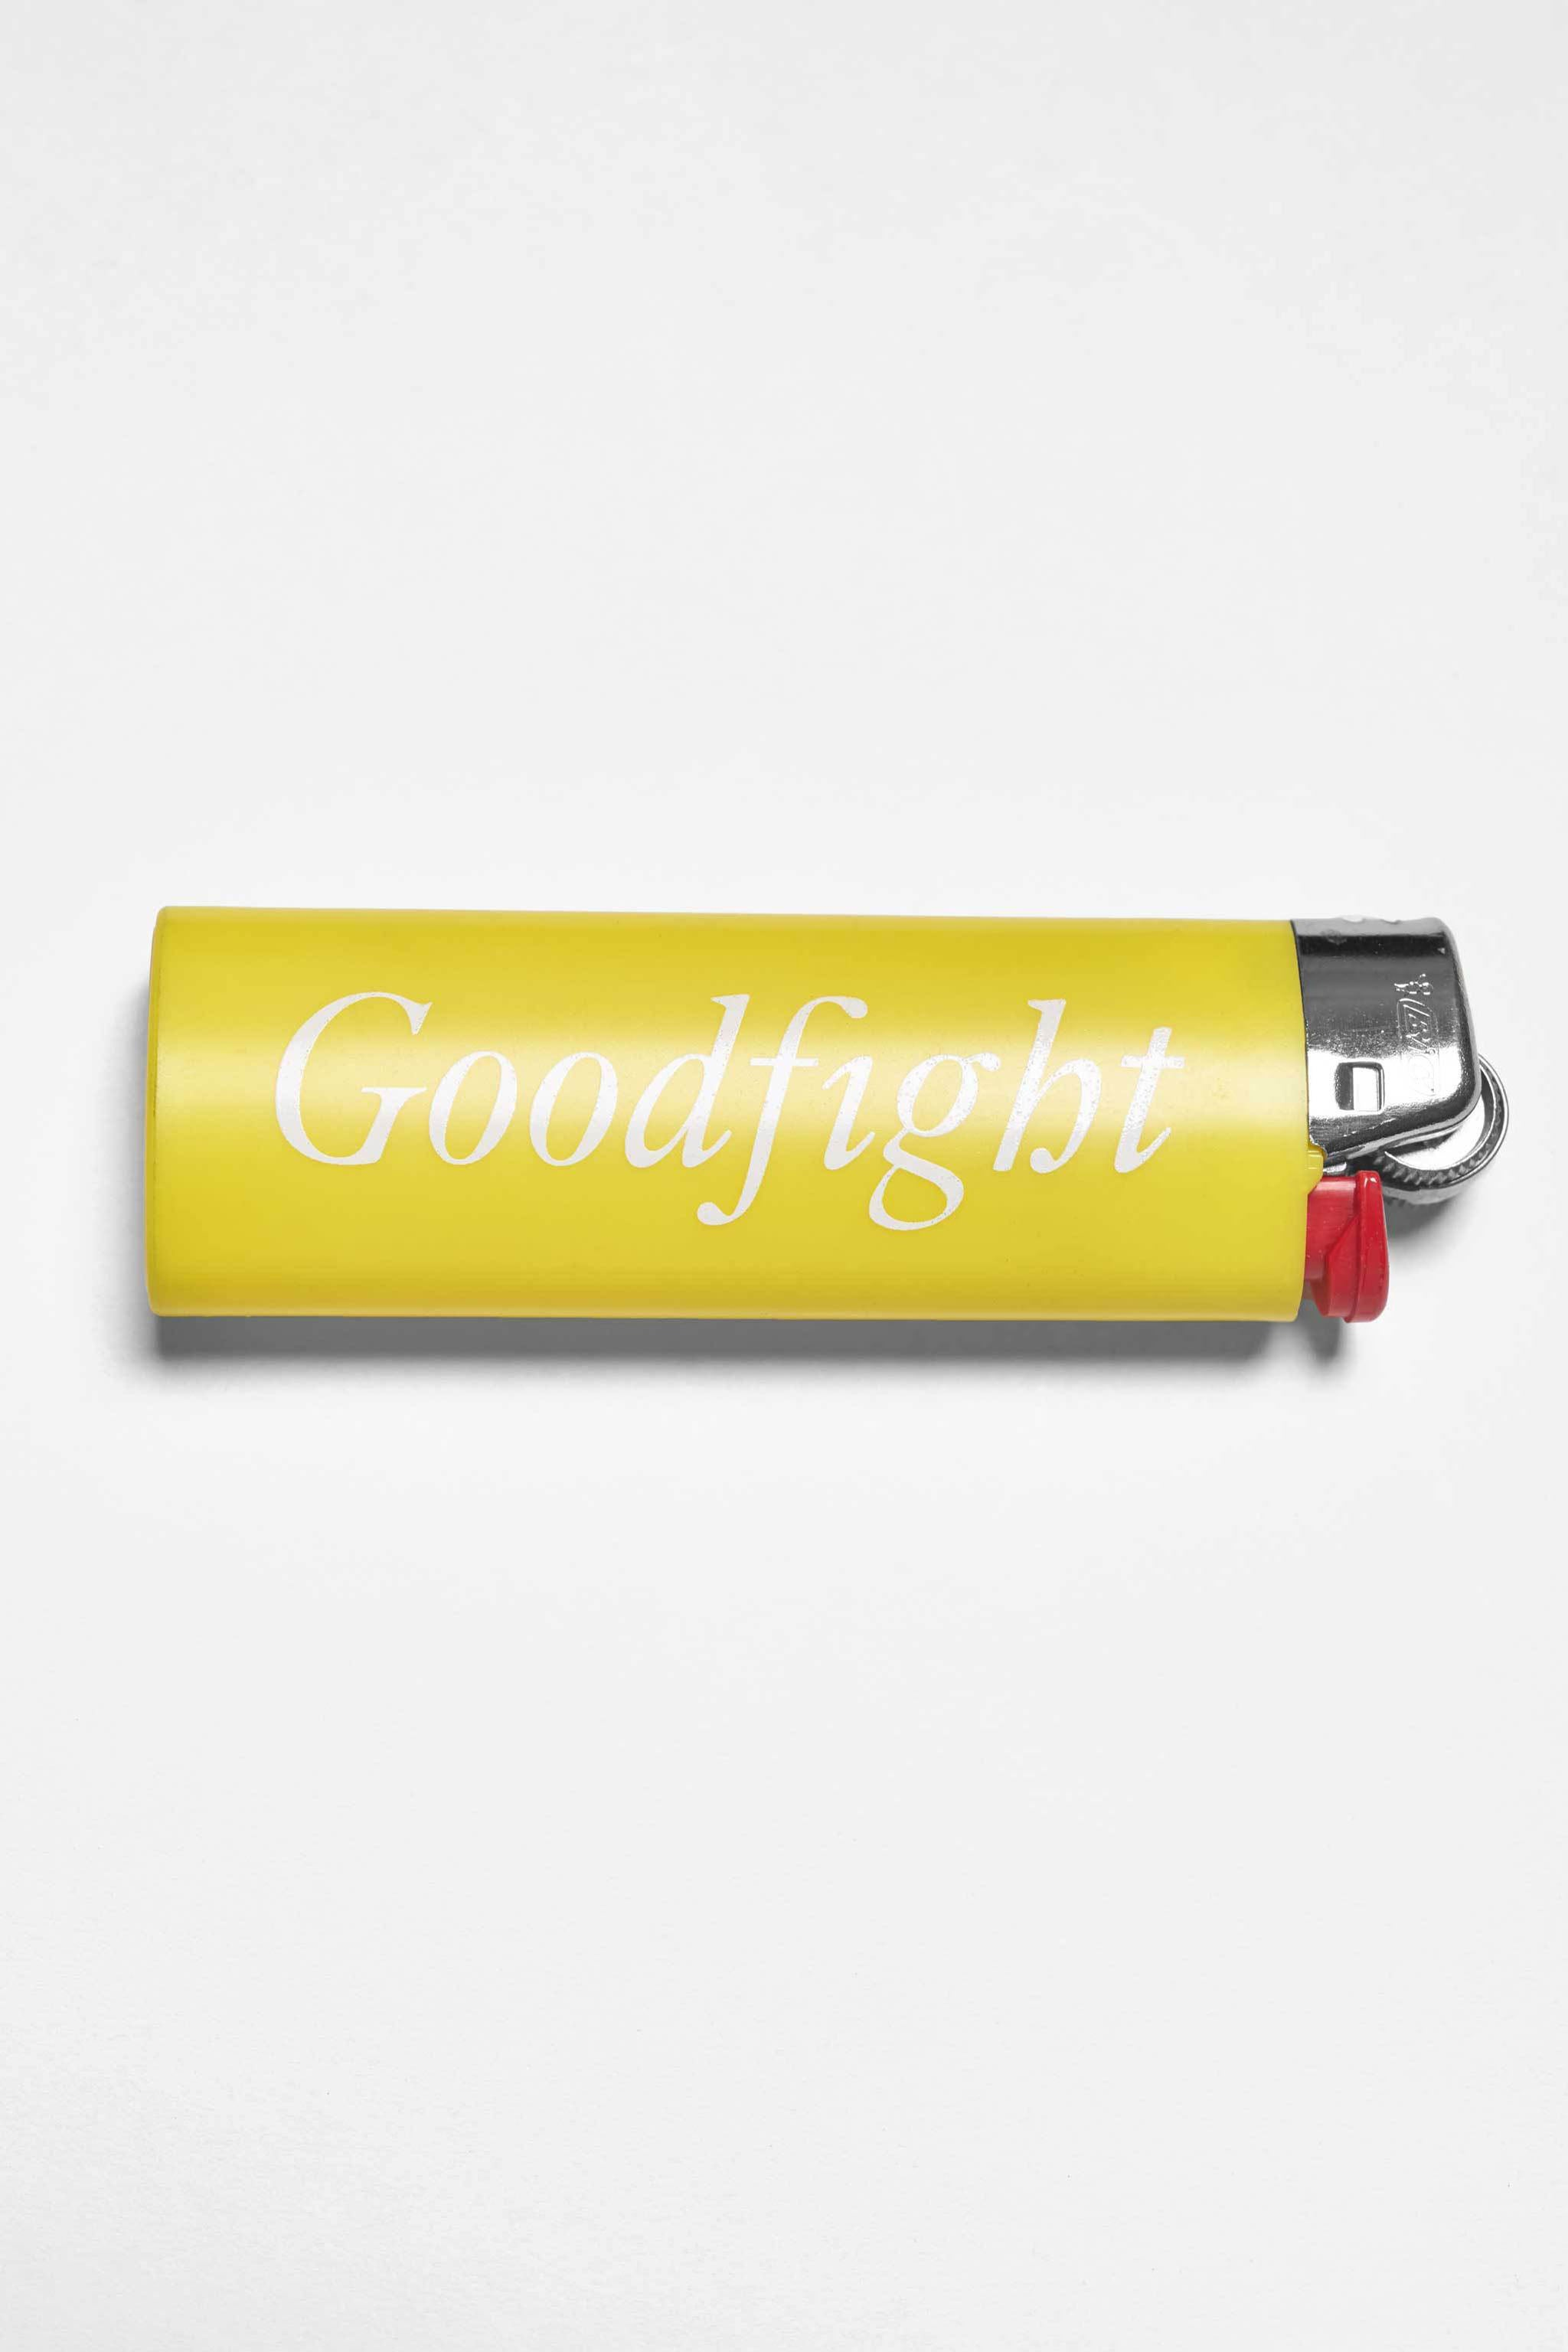 Goodfight Two-Sided Classic Logo Lighter